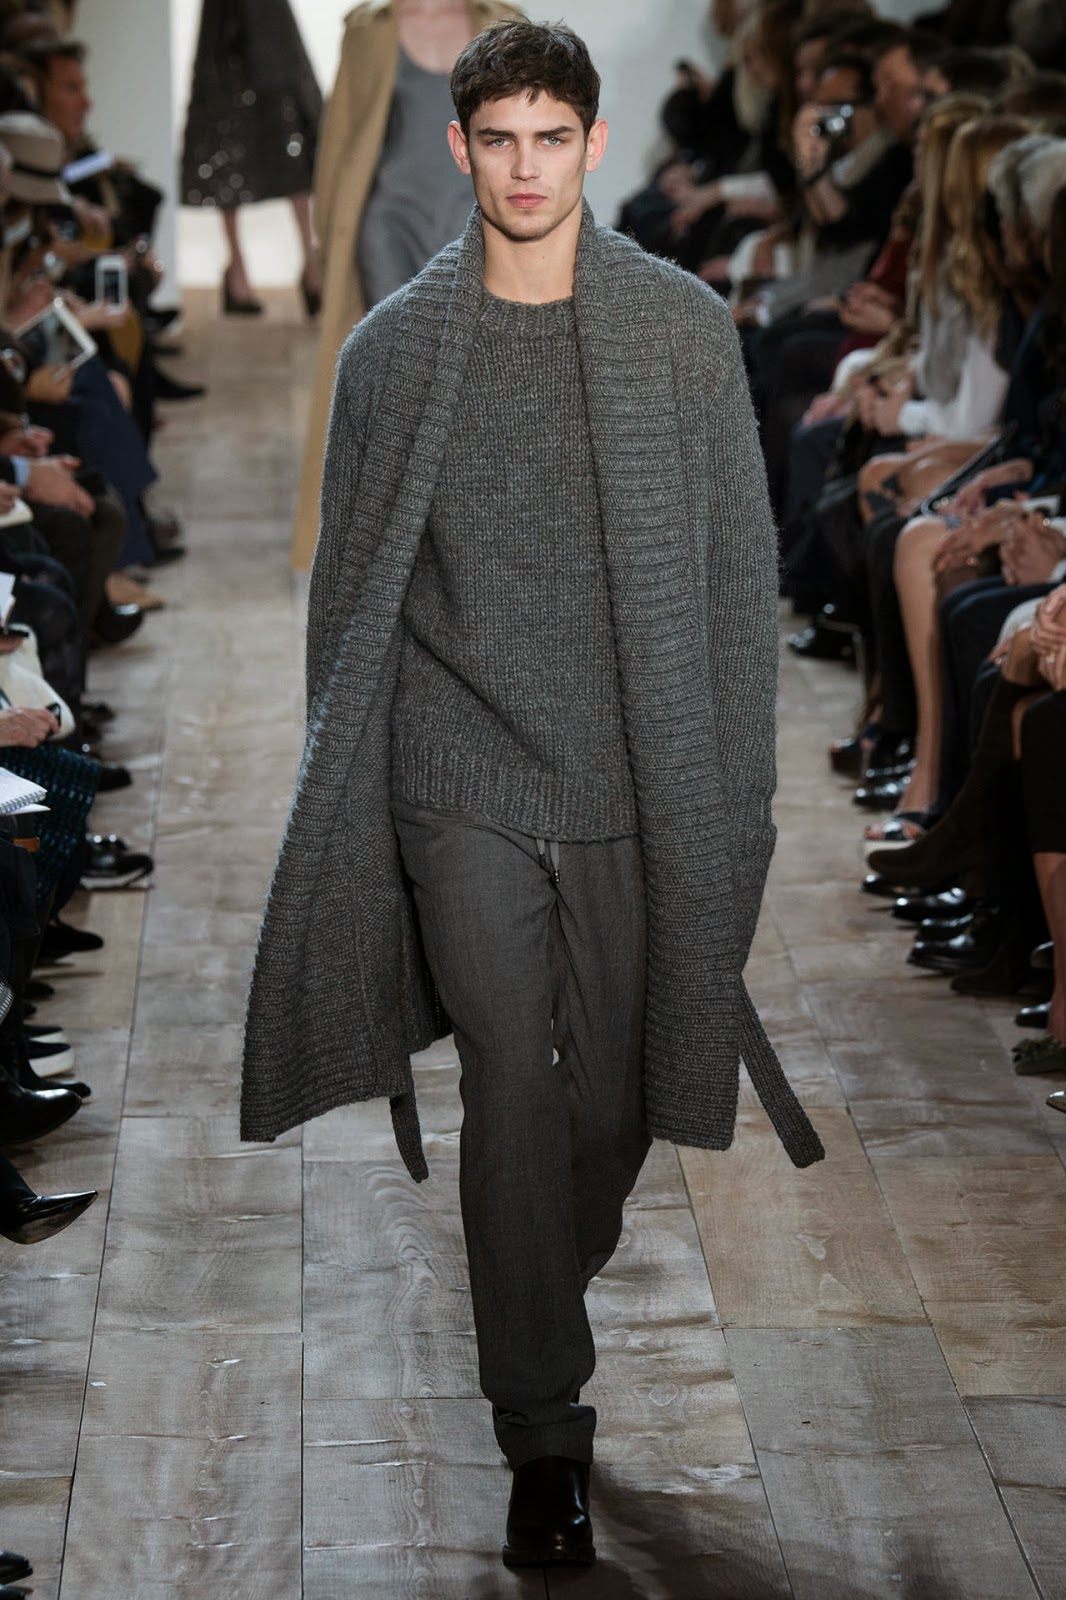 ARTHUR G. (MAJOR MODEL) para Michael Kors Fall/Winter 14-15 1 ARTHUR G. (MAJOR MODEL) para Michael Kors Fall/Winter 14-15